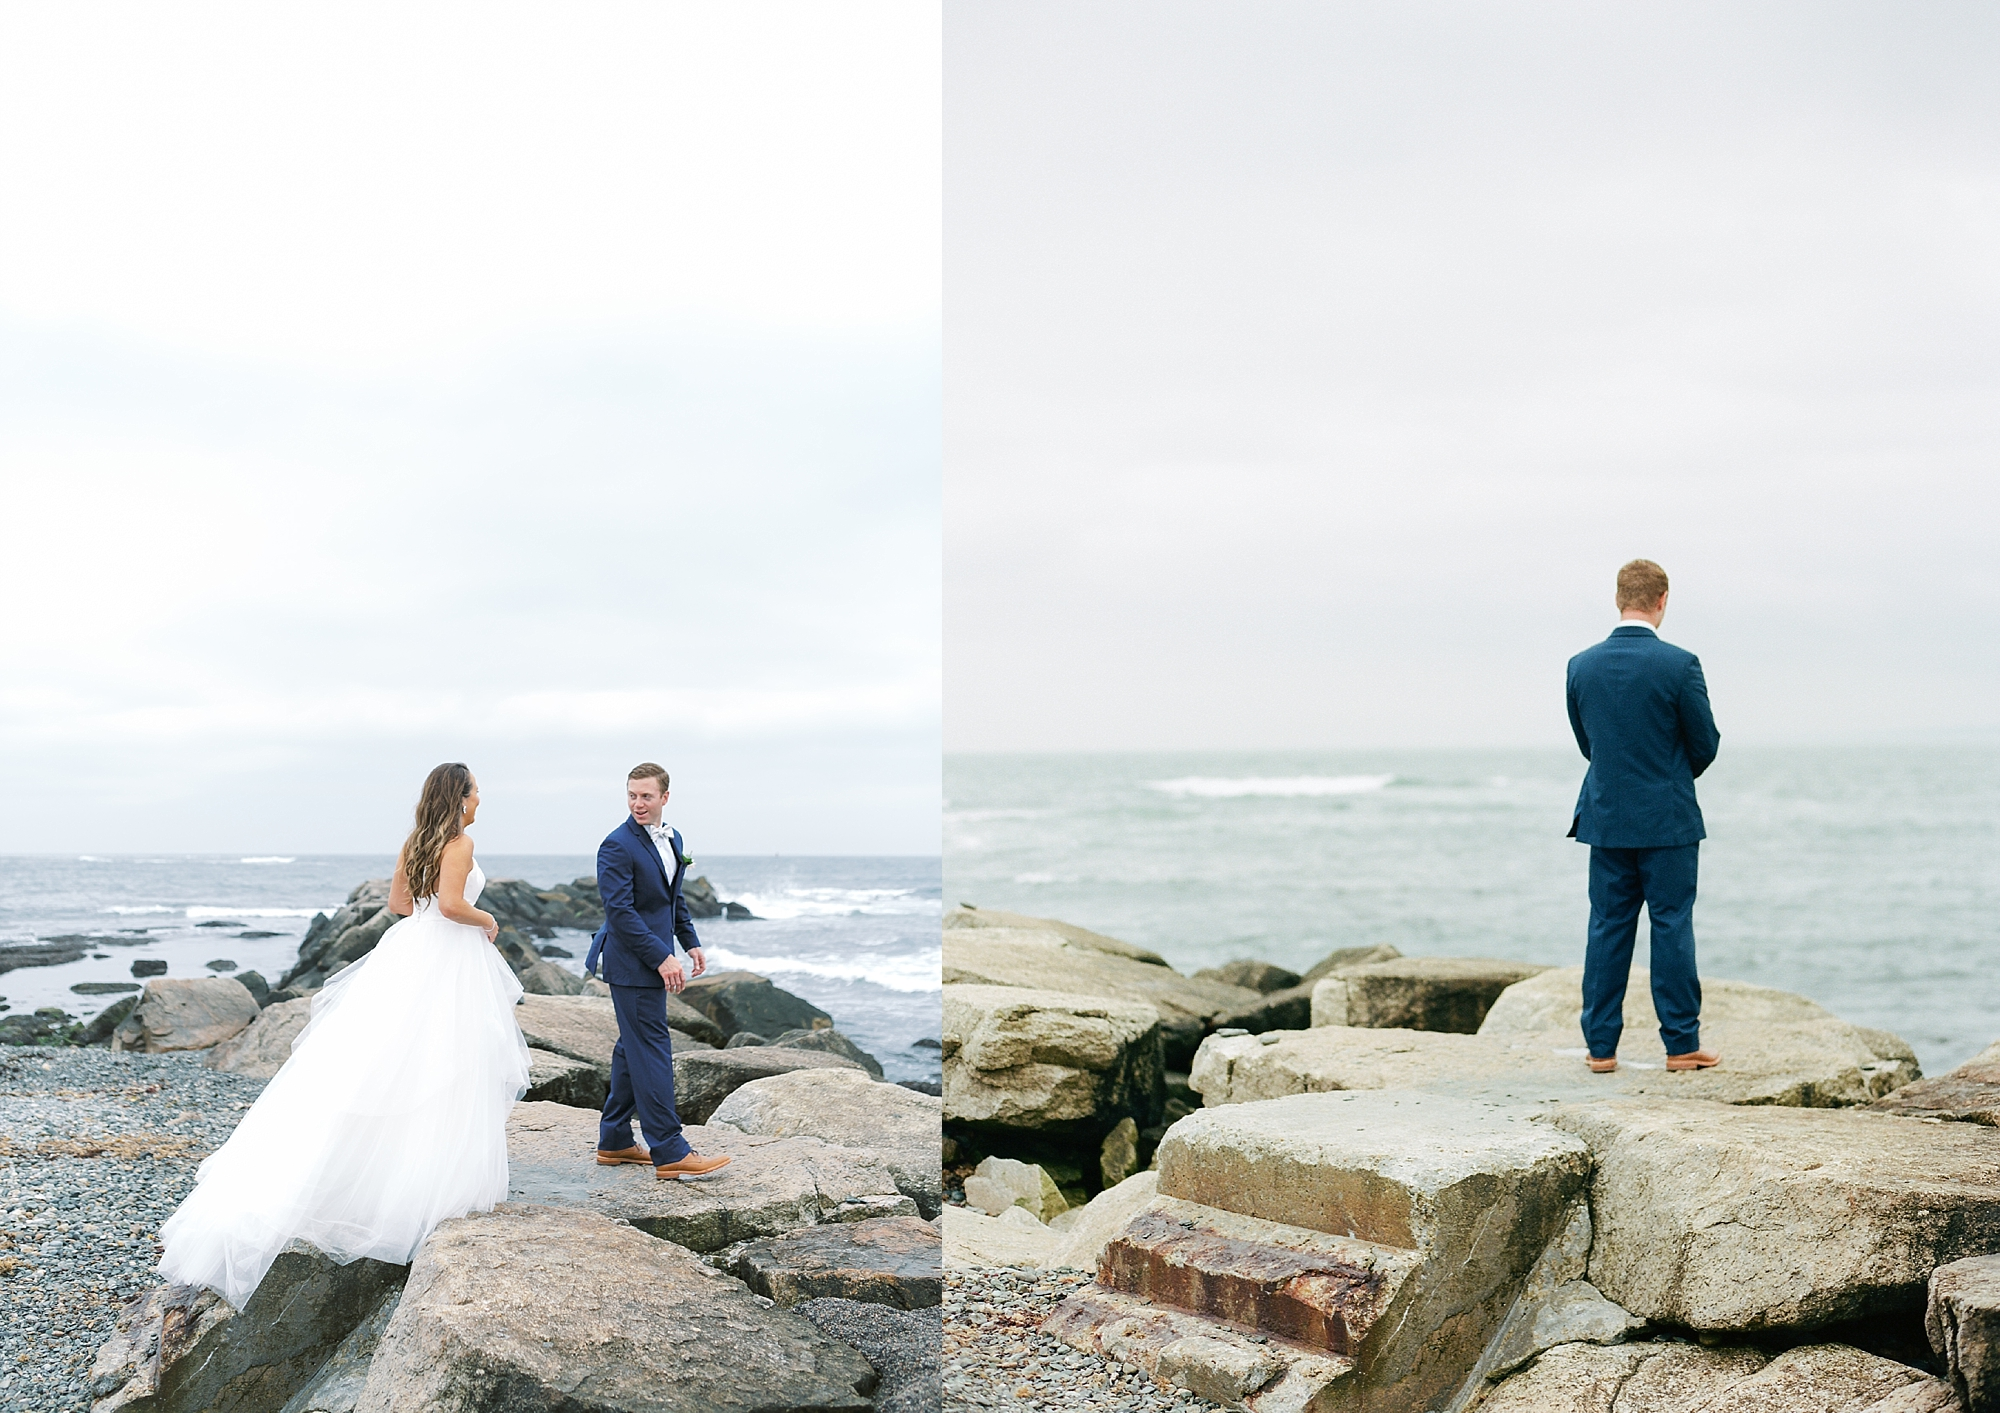 Coastal and Authentic Film Wedding Photography in Newport Rhode Island by Magdalena Studios 0022